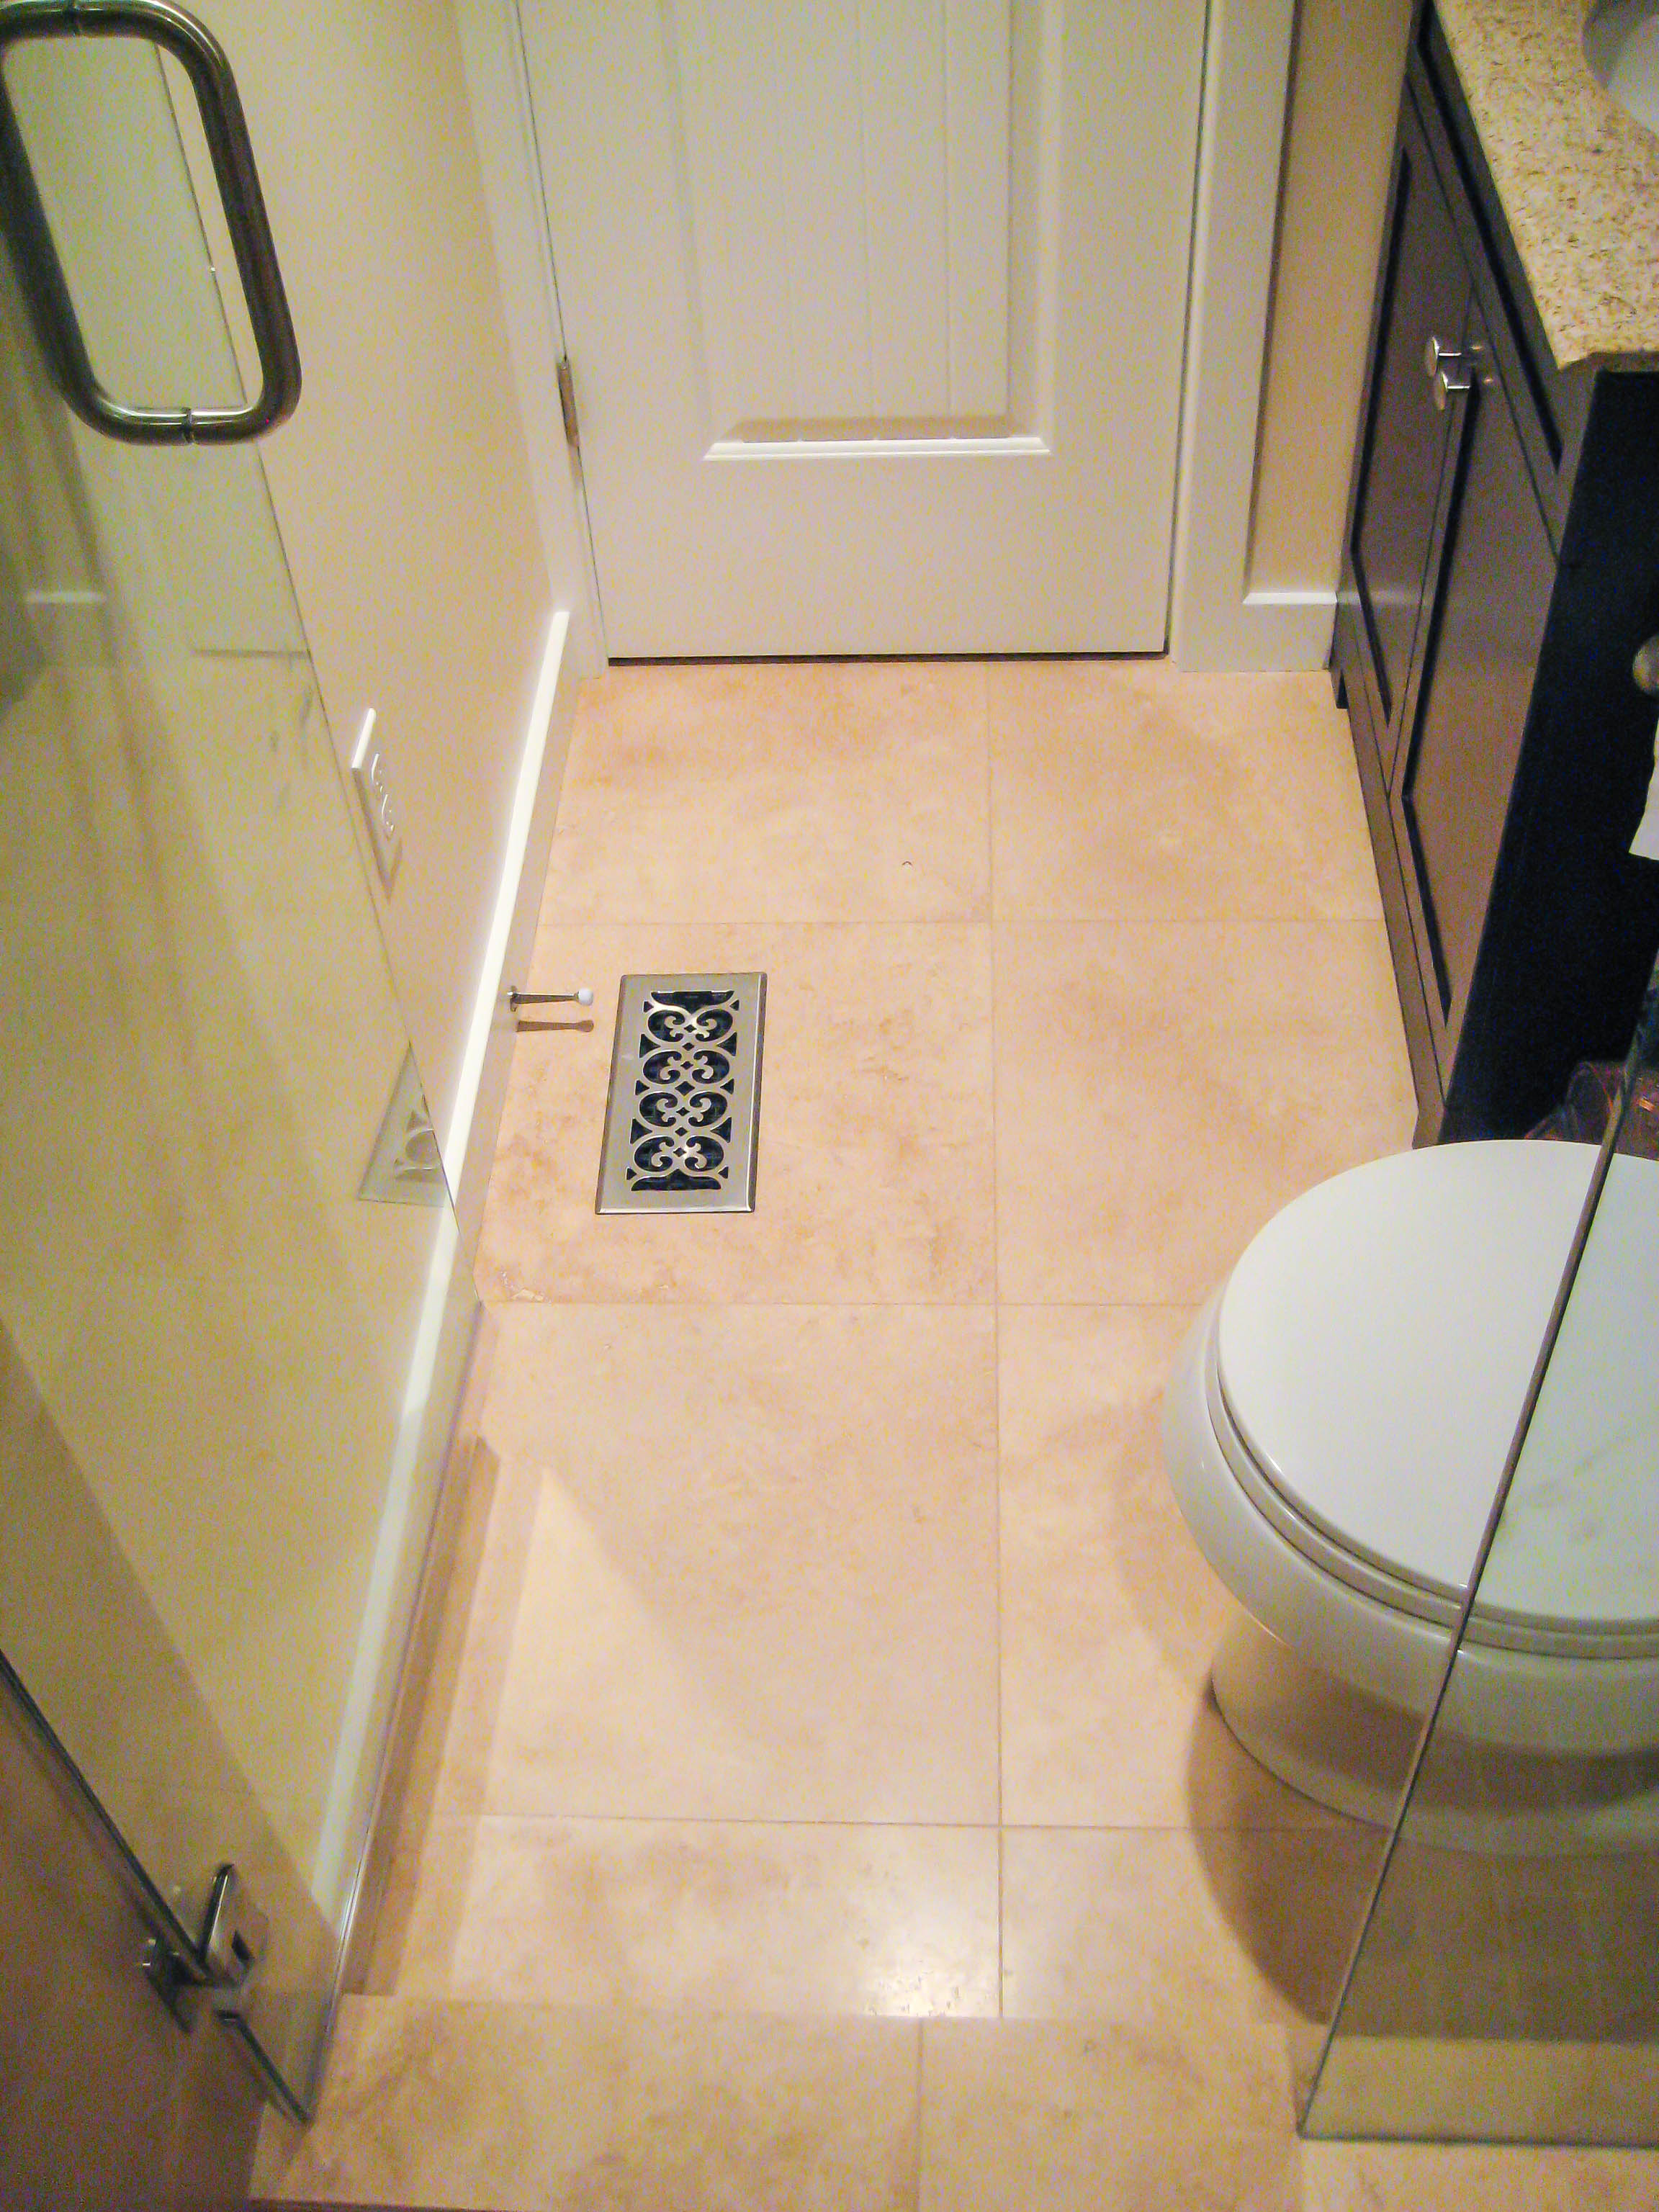 Bathroom Floors - Seattle Tile Contractor | IRC Tile Services